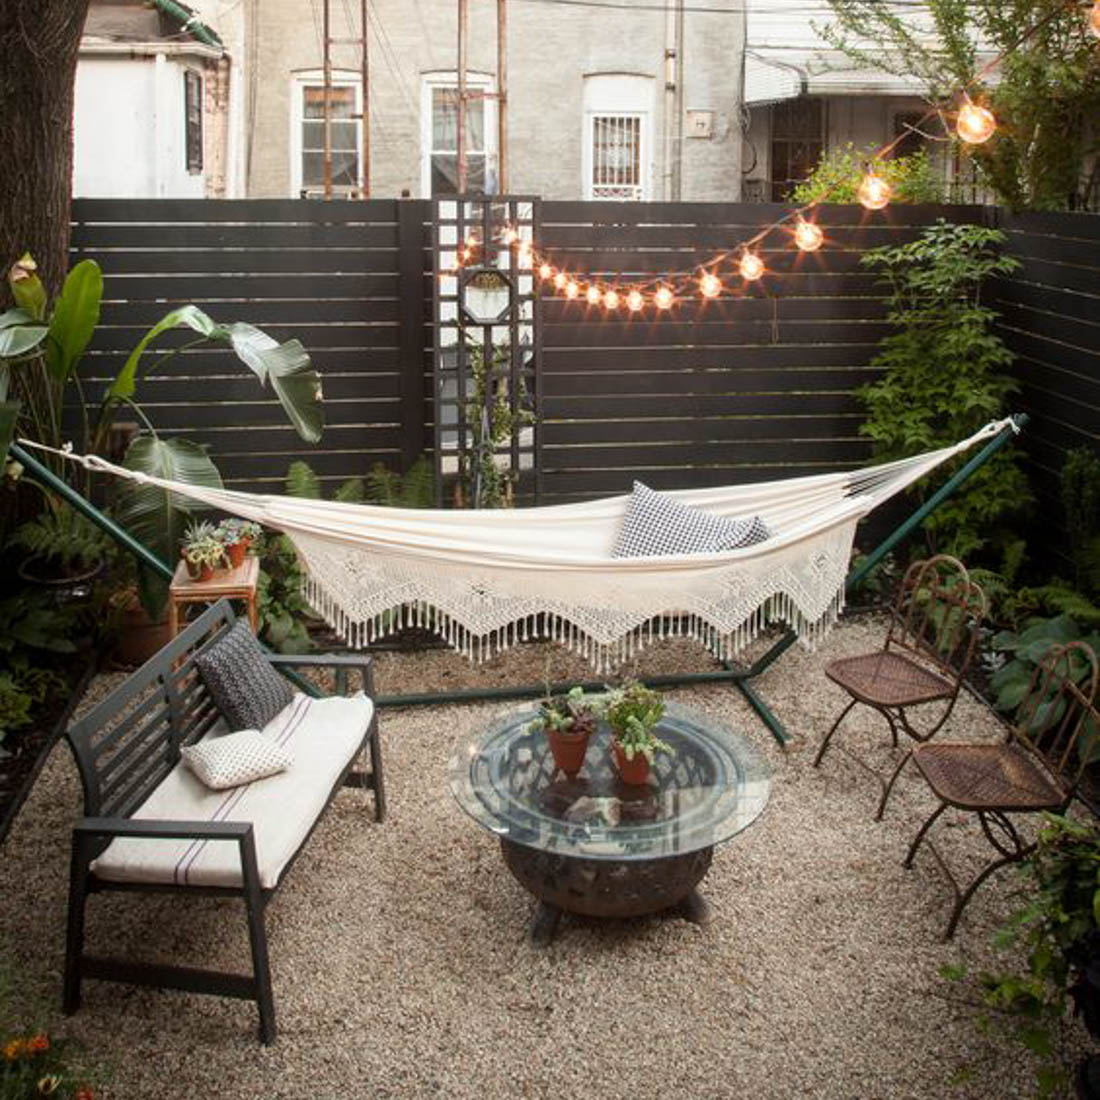 Courtyard Garden Inspiration - Grotec Landscape Solutions on Courtyard Patio Ideas id=34019